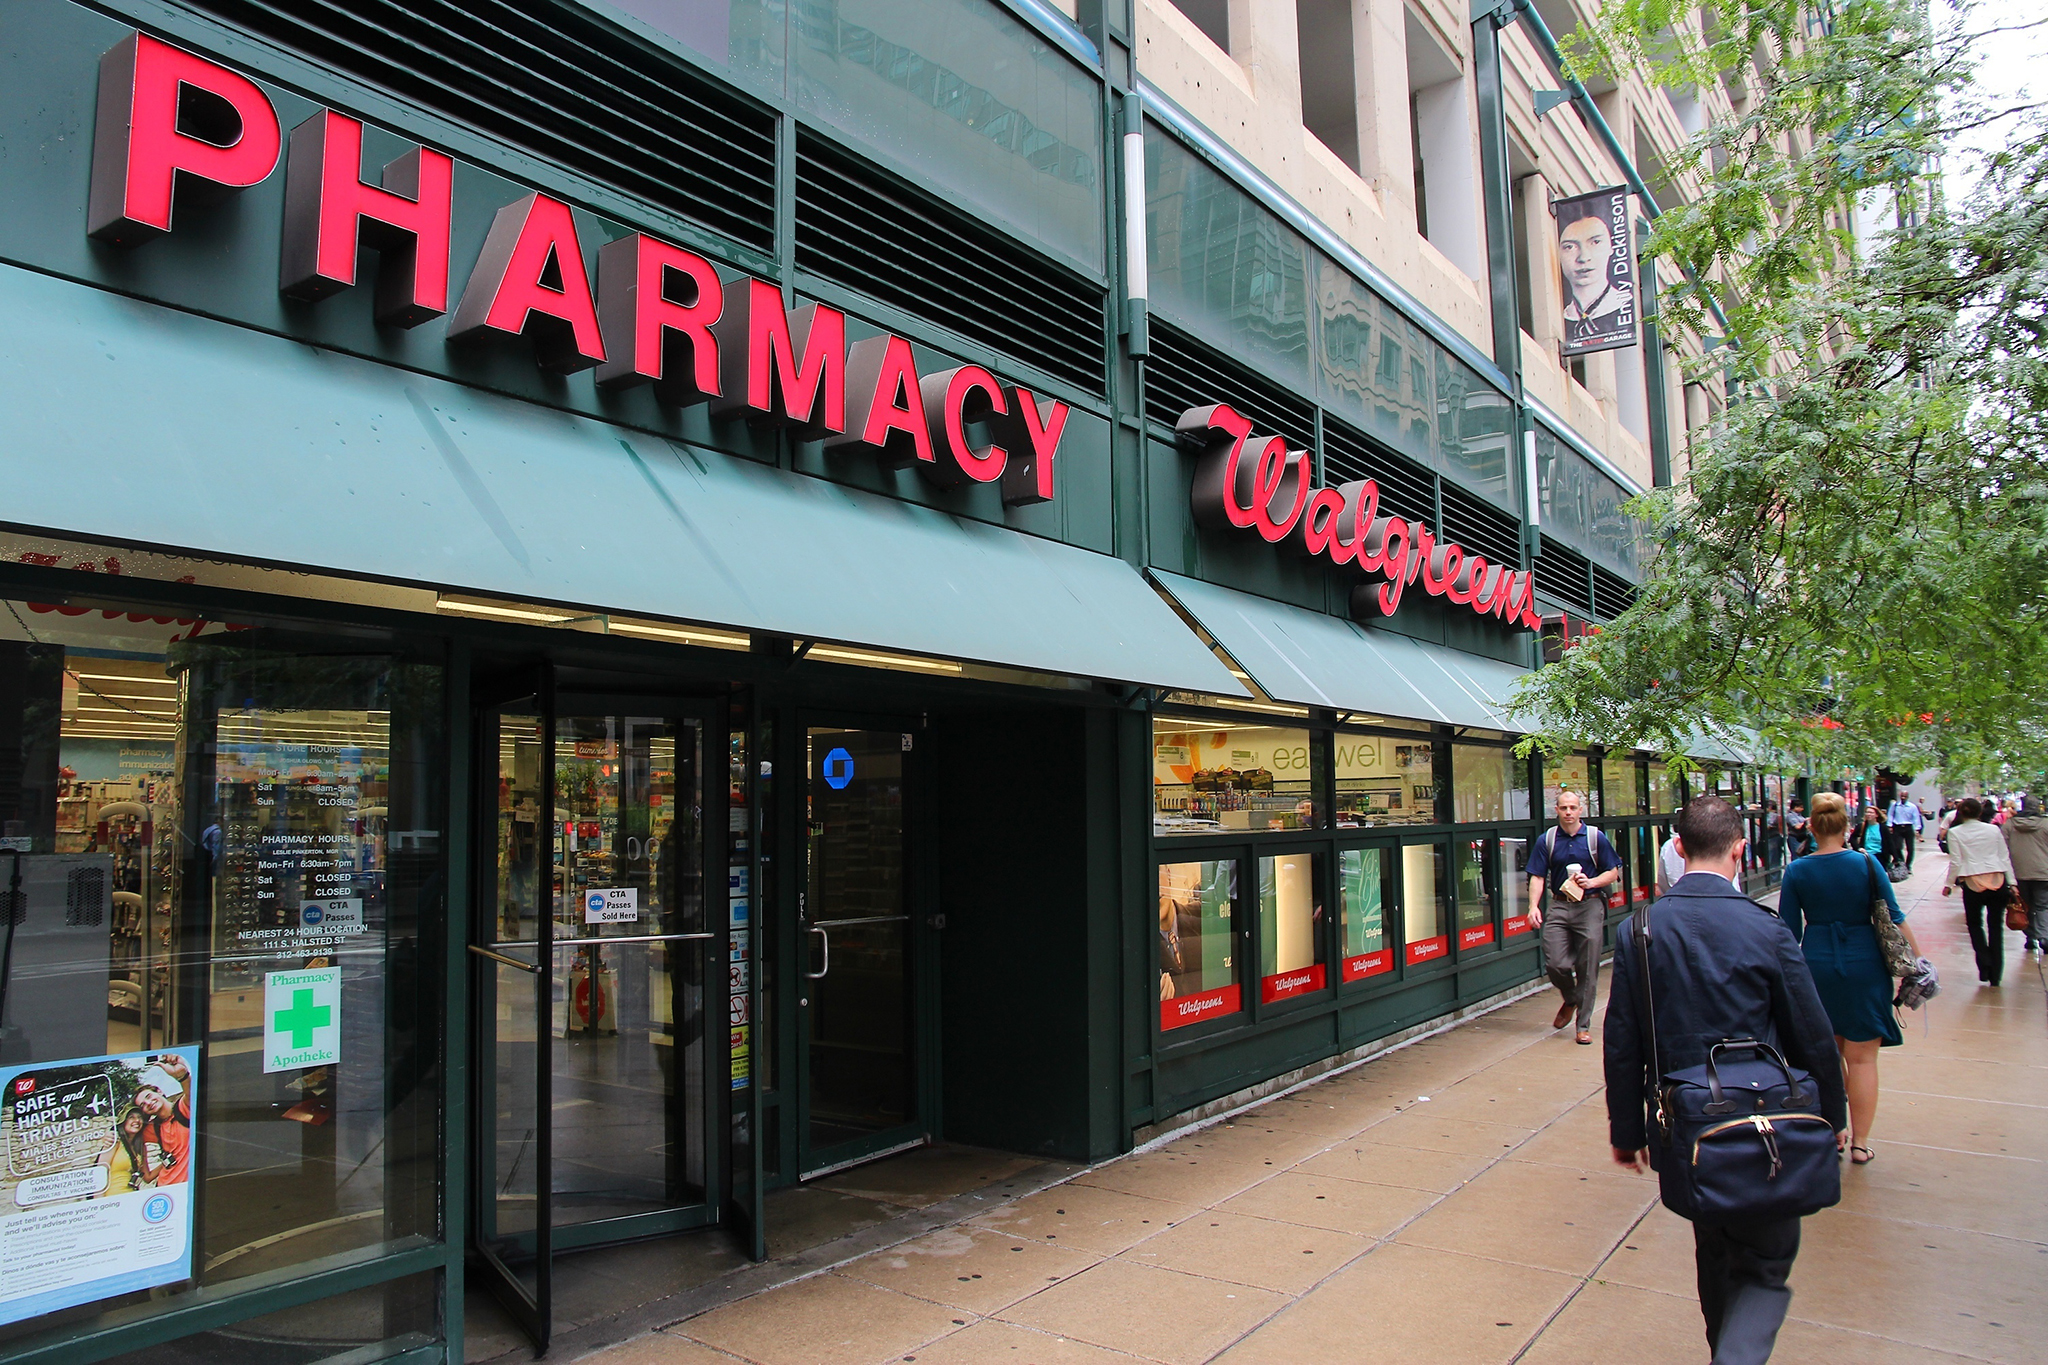 Pharmacy practice at Walgreens embraces an unmatched standard of quality care, and encourages pharmacists to take on new clinical roles in the community. As a pharmacist, this means Walgreens can offer unparalleled opportunities to advance your career and impact your patients' health and daily living.